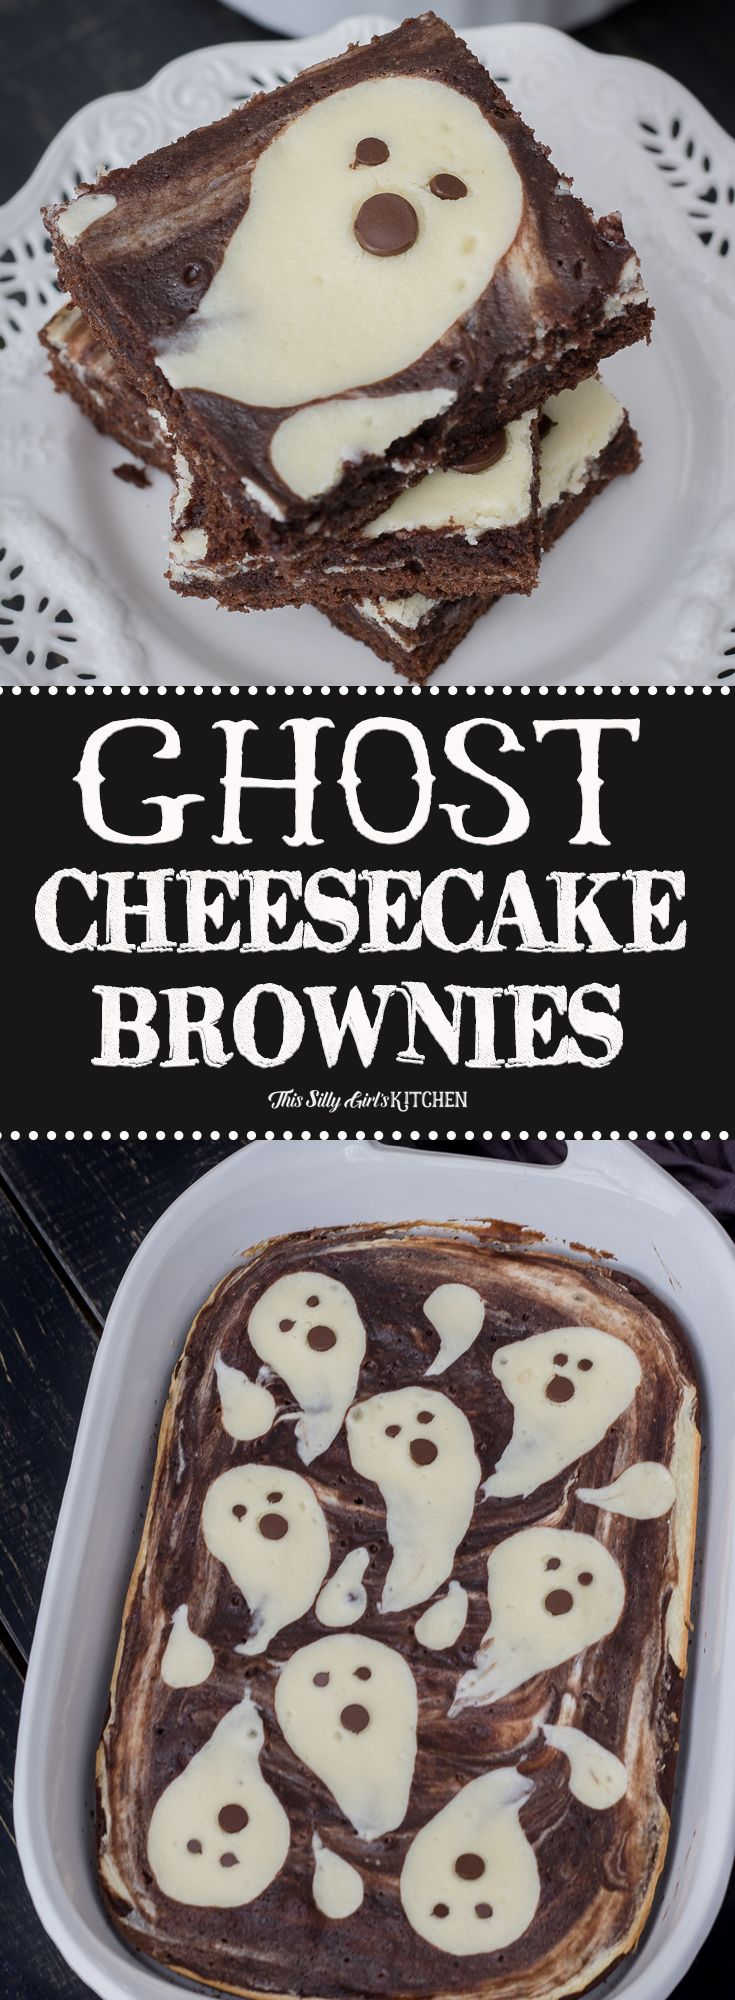 Cheesecake Brownies, made with fun ghost shapes, perfect